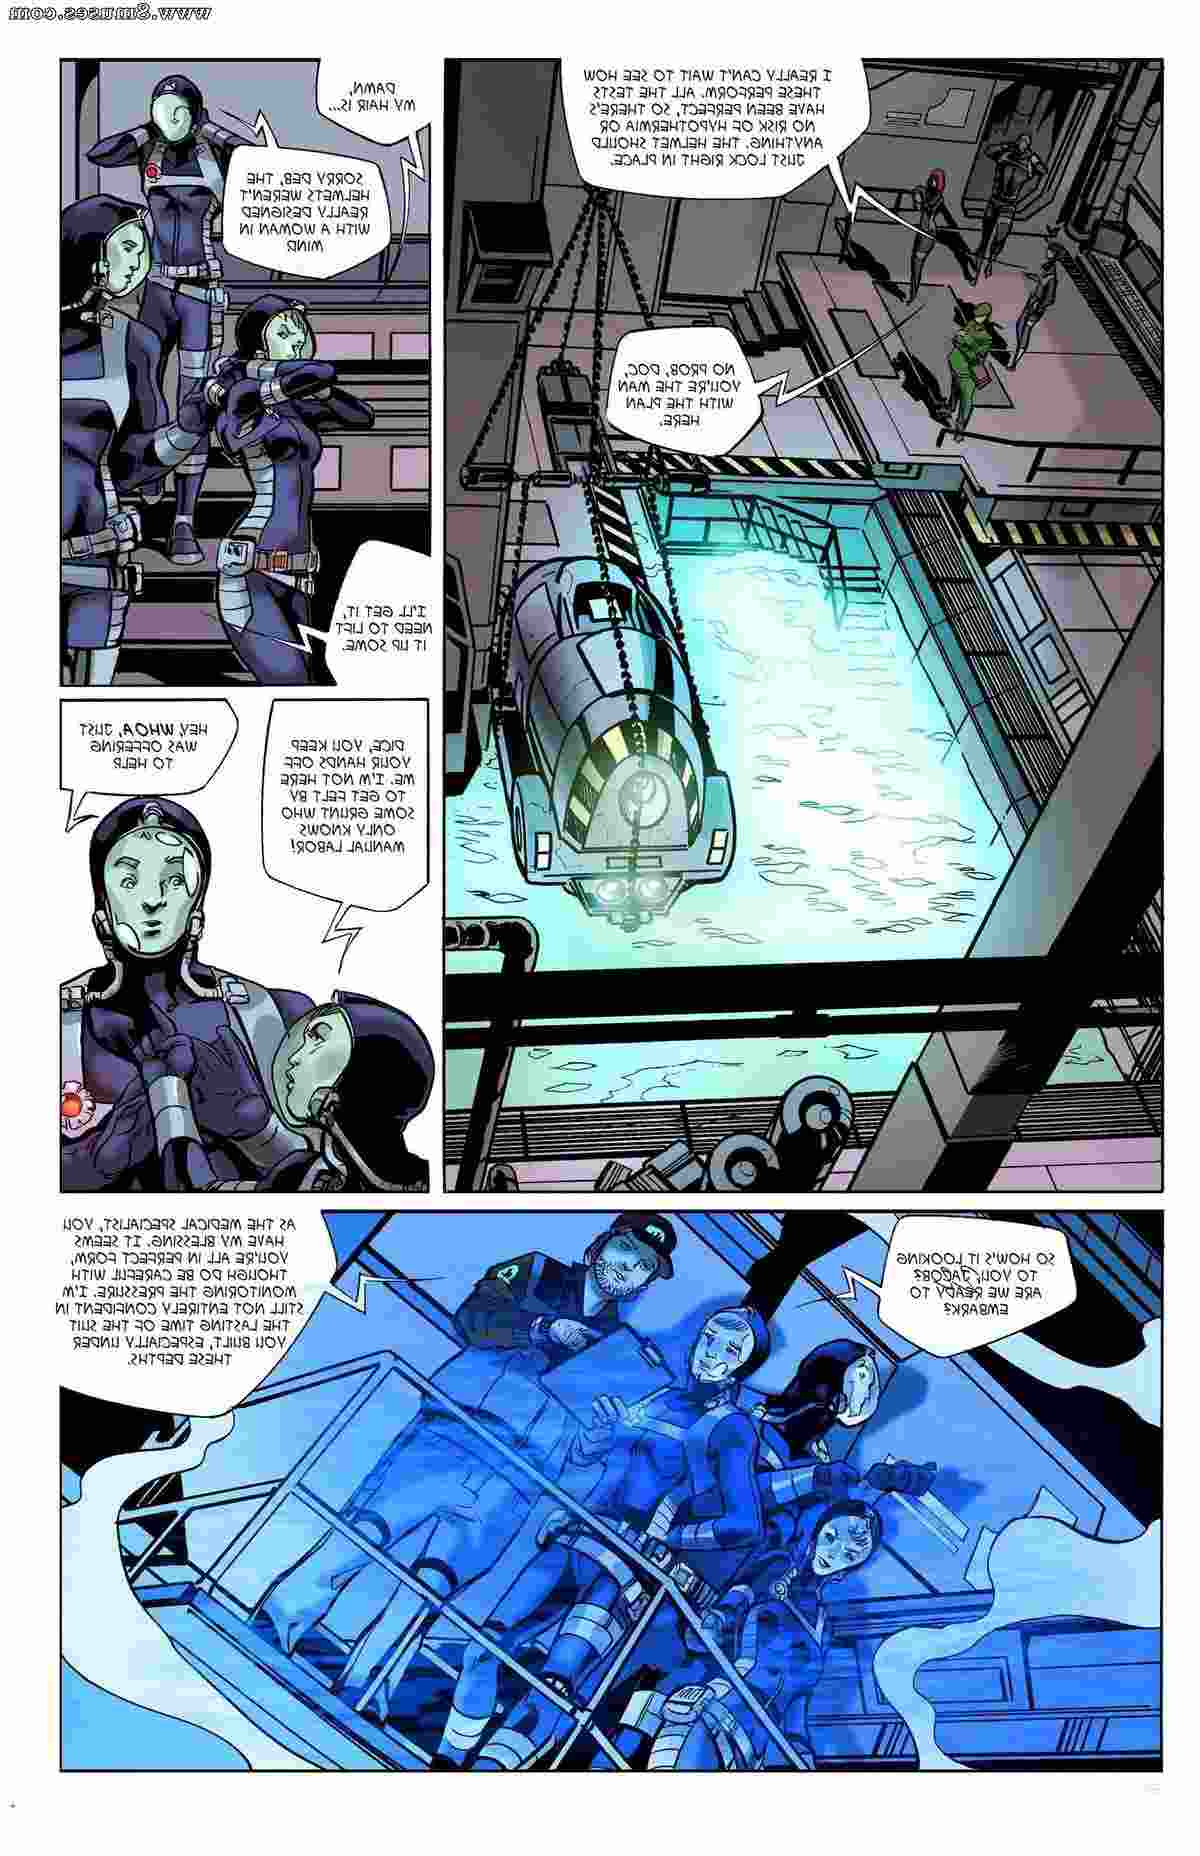 Giantess-Club-Comics/Bubbling-Up-from-the-Abyss Bubbling_Up_from_the_Abyss__8muses_-_Sex_and_Porn_Comics_5.jpg